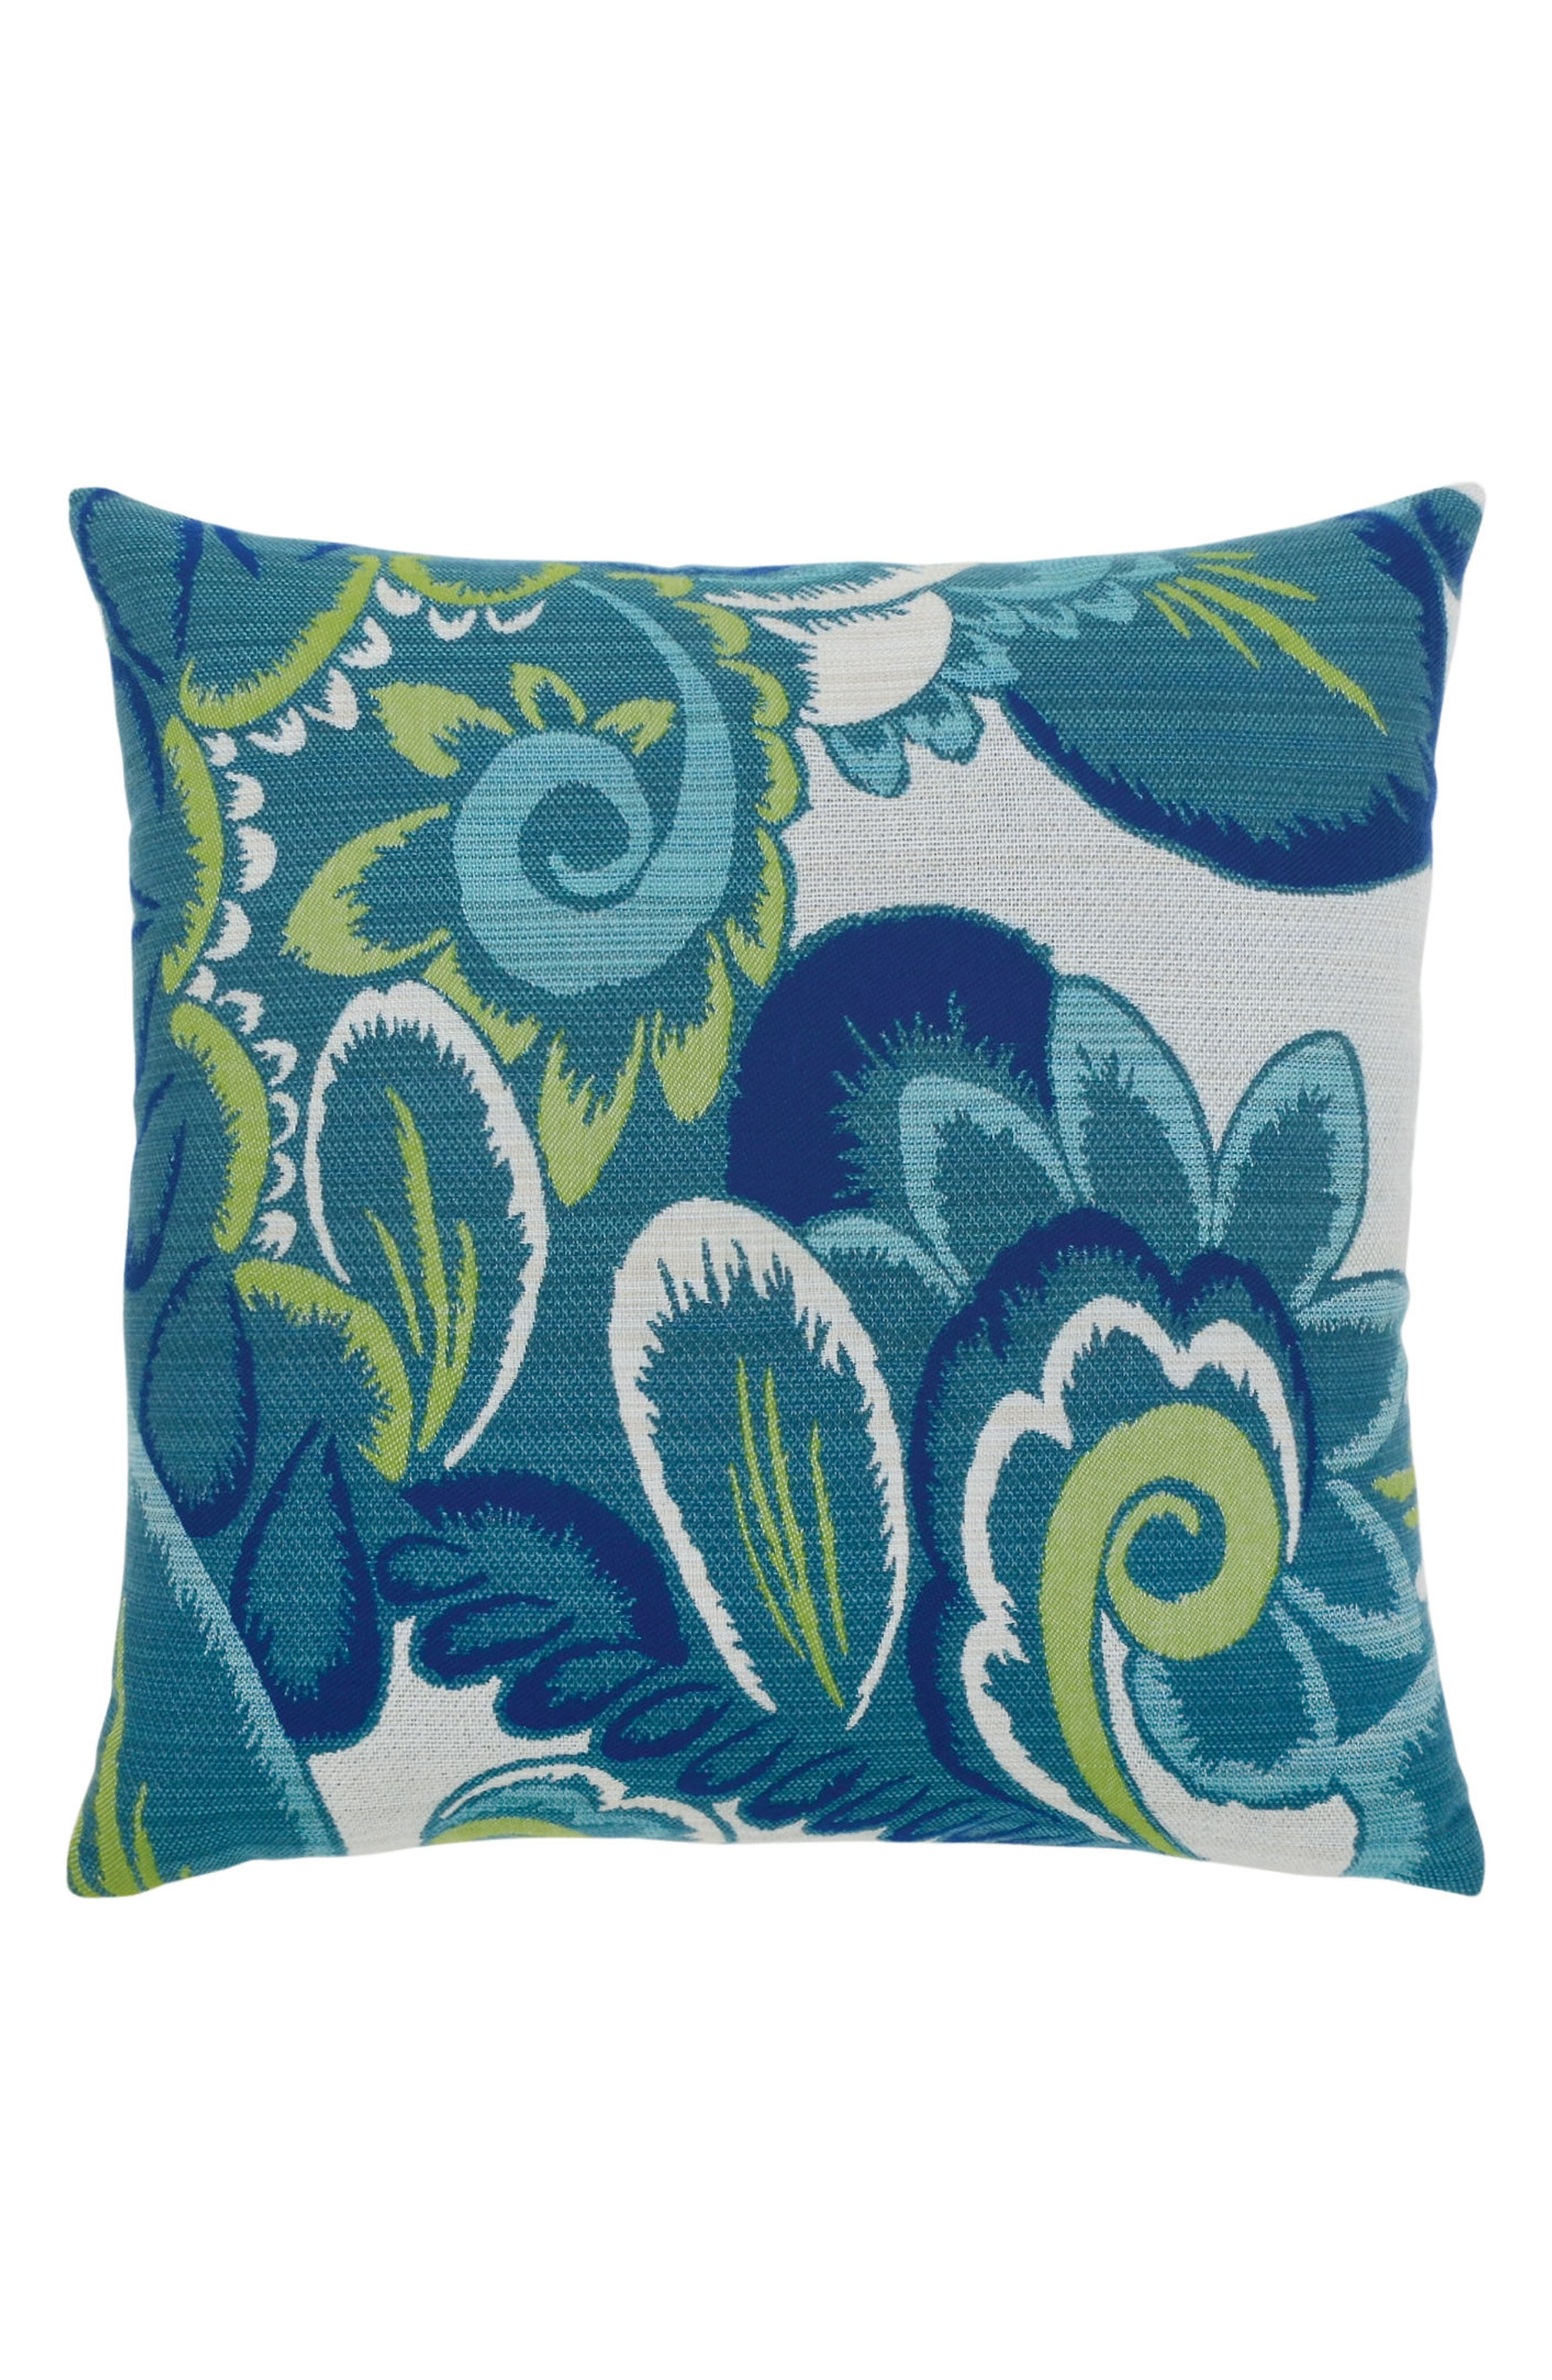 Floral Wave Indoor/Outdoor Accent Pillow,                         Main,                         color, 400